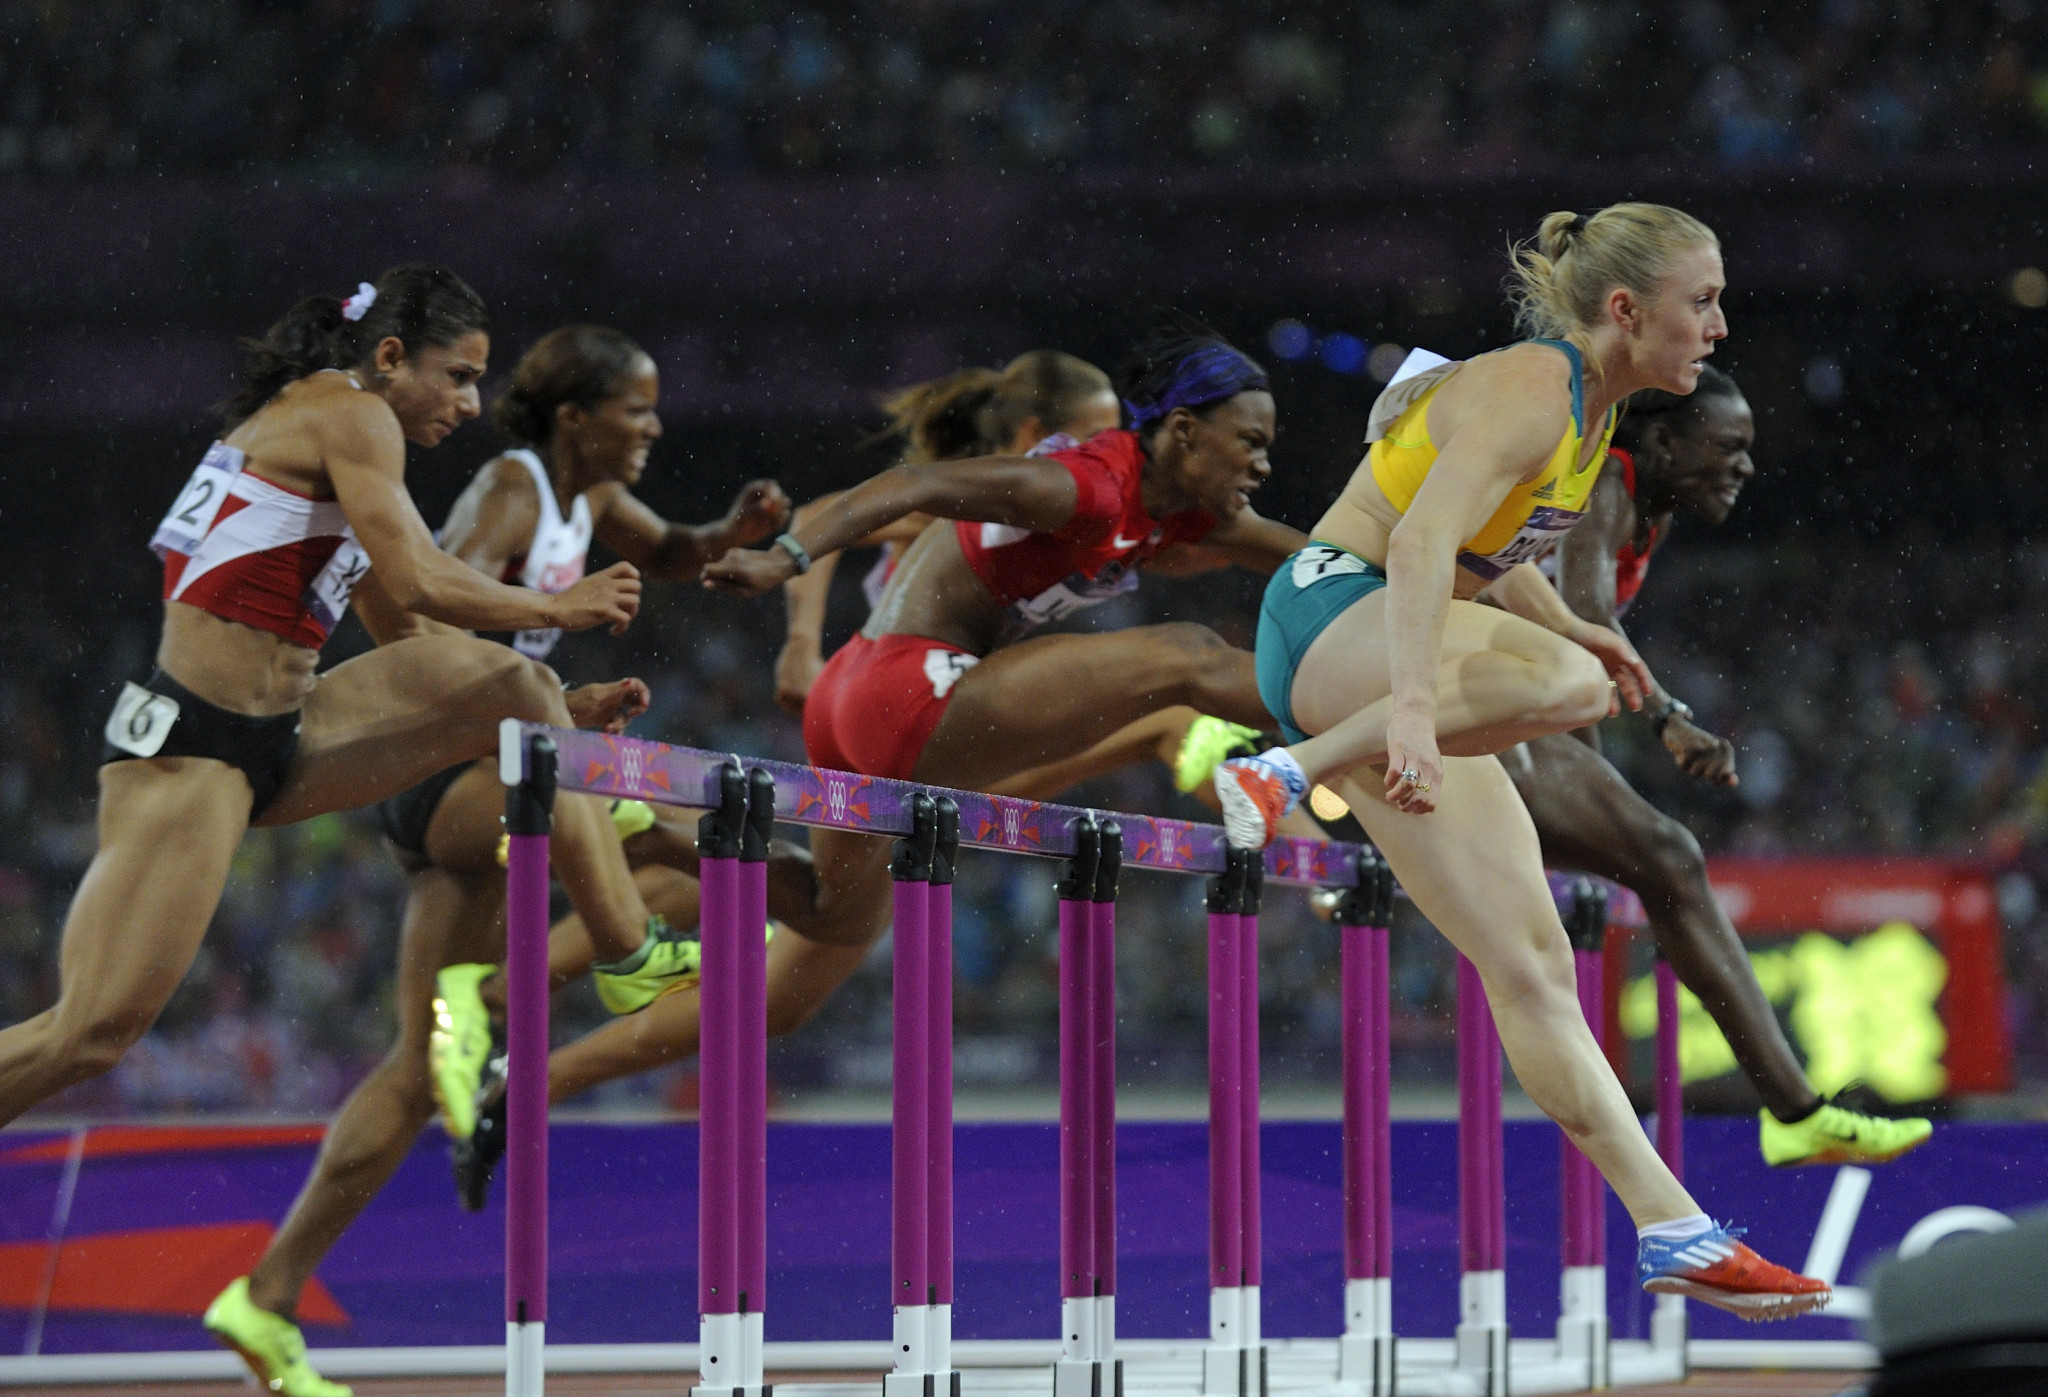 Sally Pearson earned Olympic gold in the 100m hurdles at London 2012 ©Getty Images